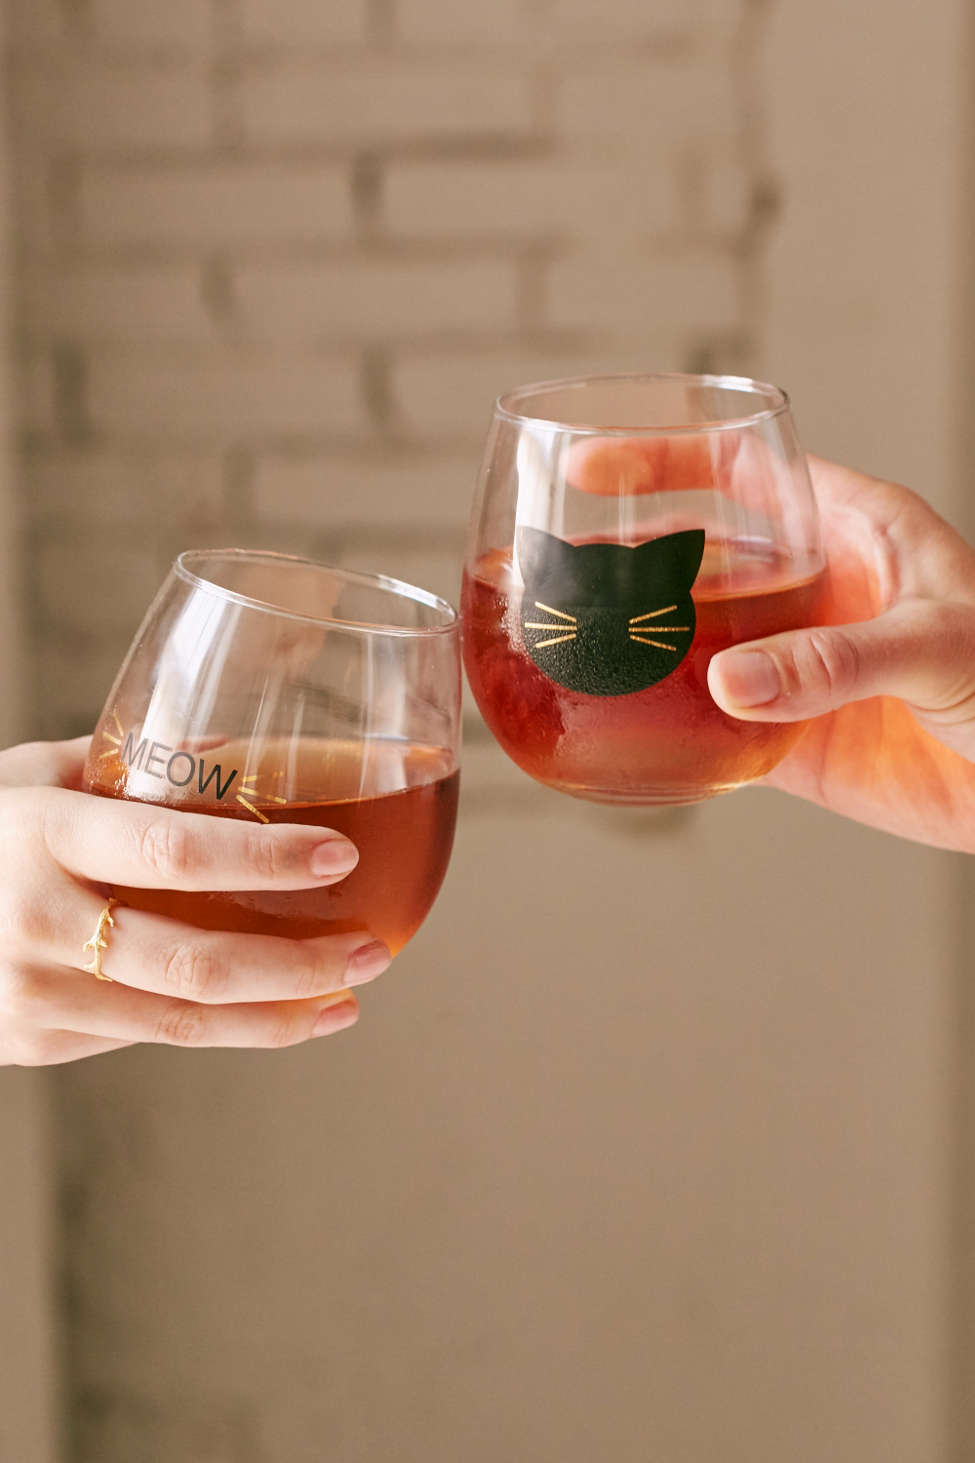 Meow Stemless Wine Glass Set